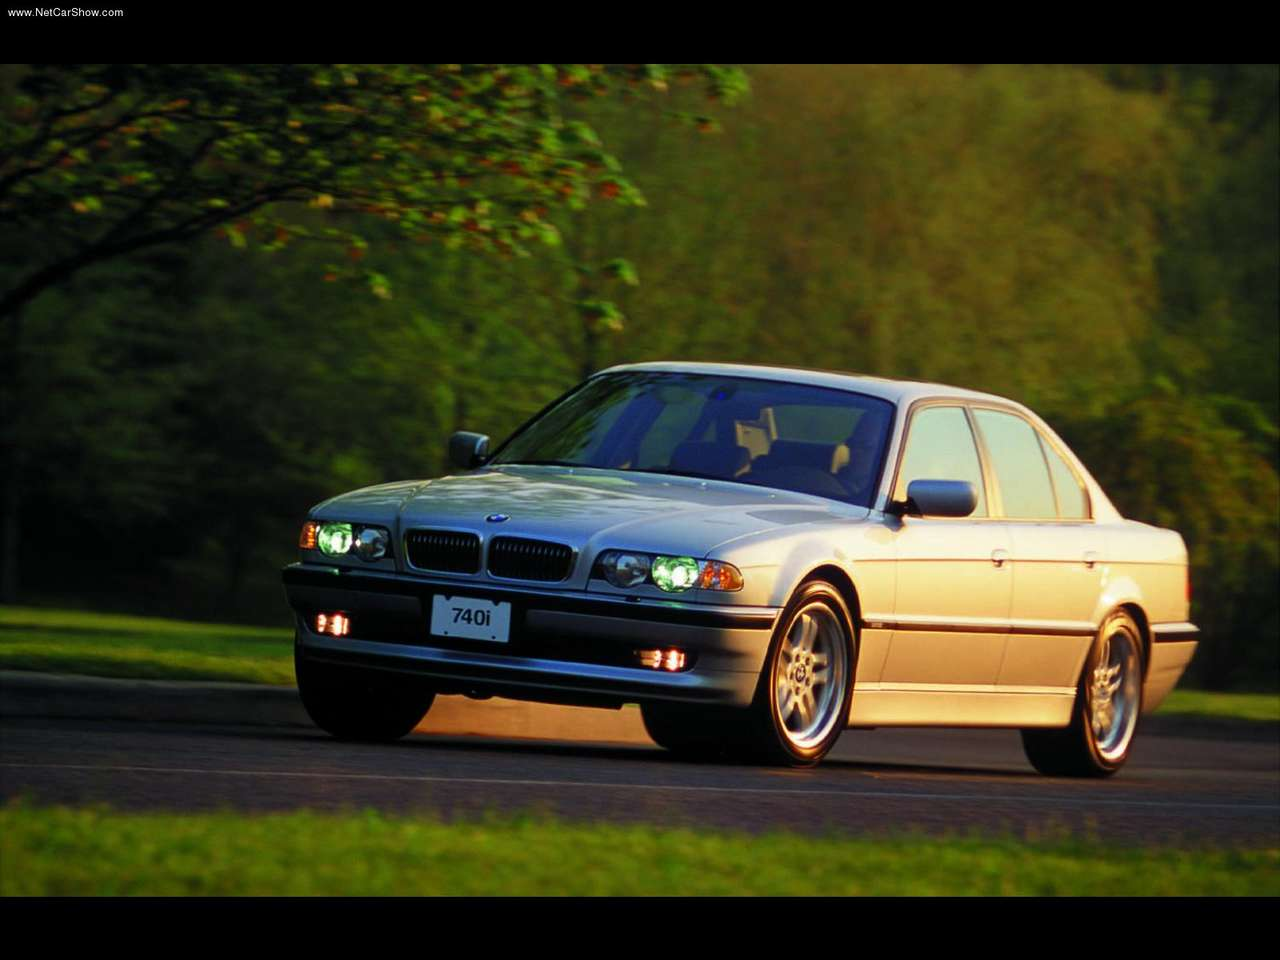 Bmw 728i 2001 Review Amazing Pictures And Images Look At The Car